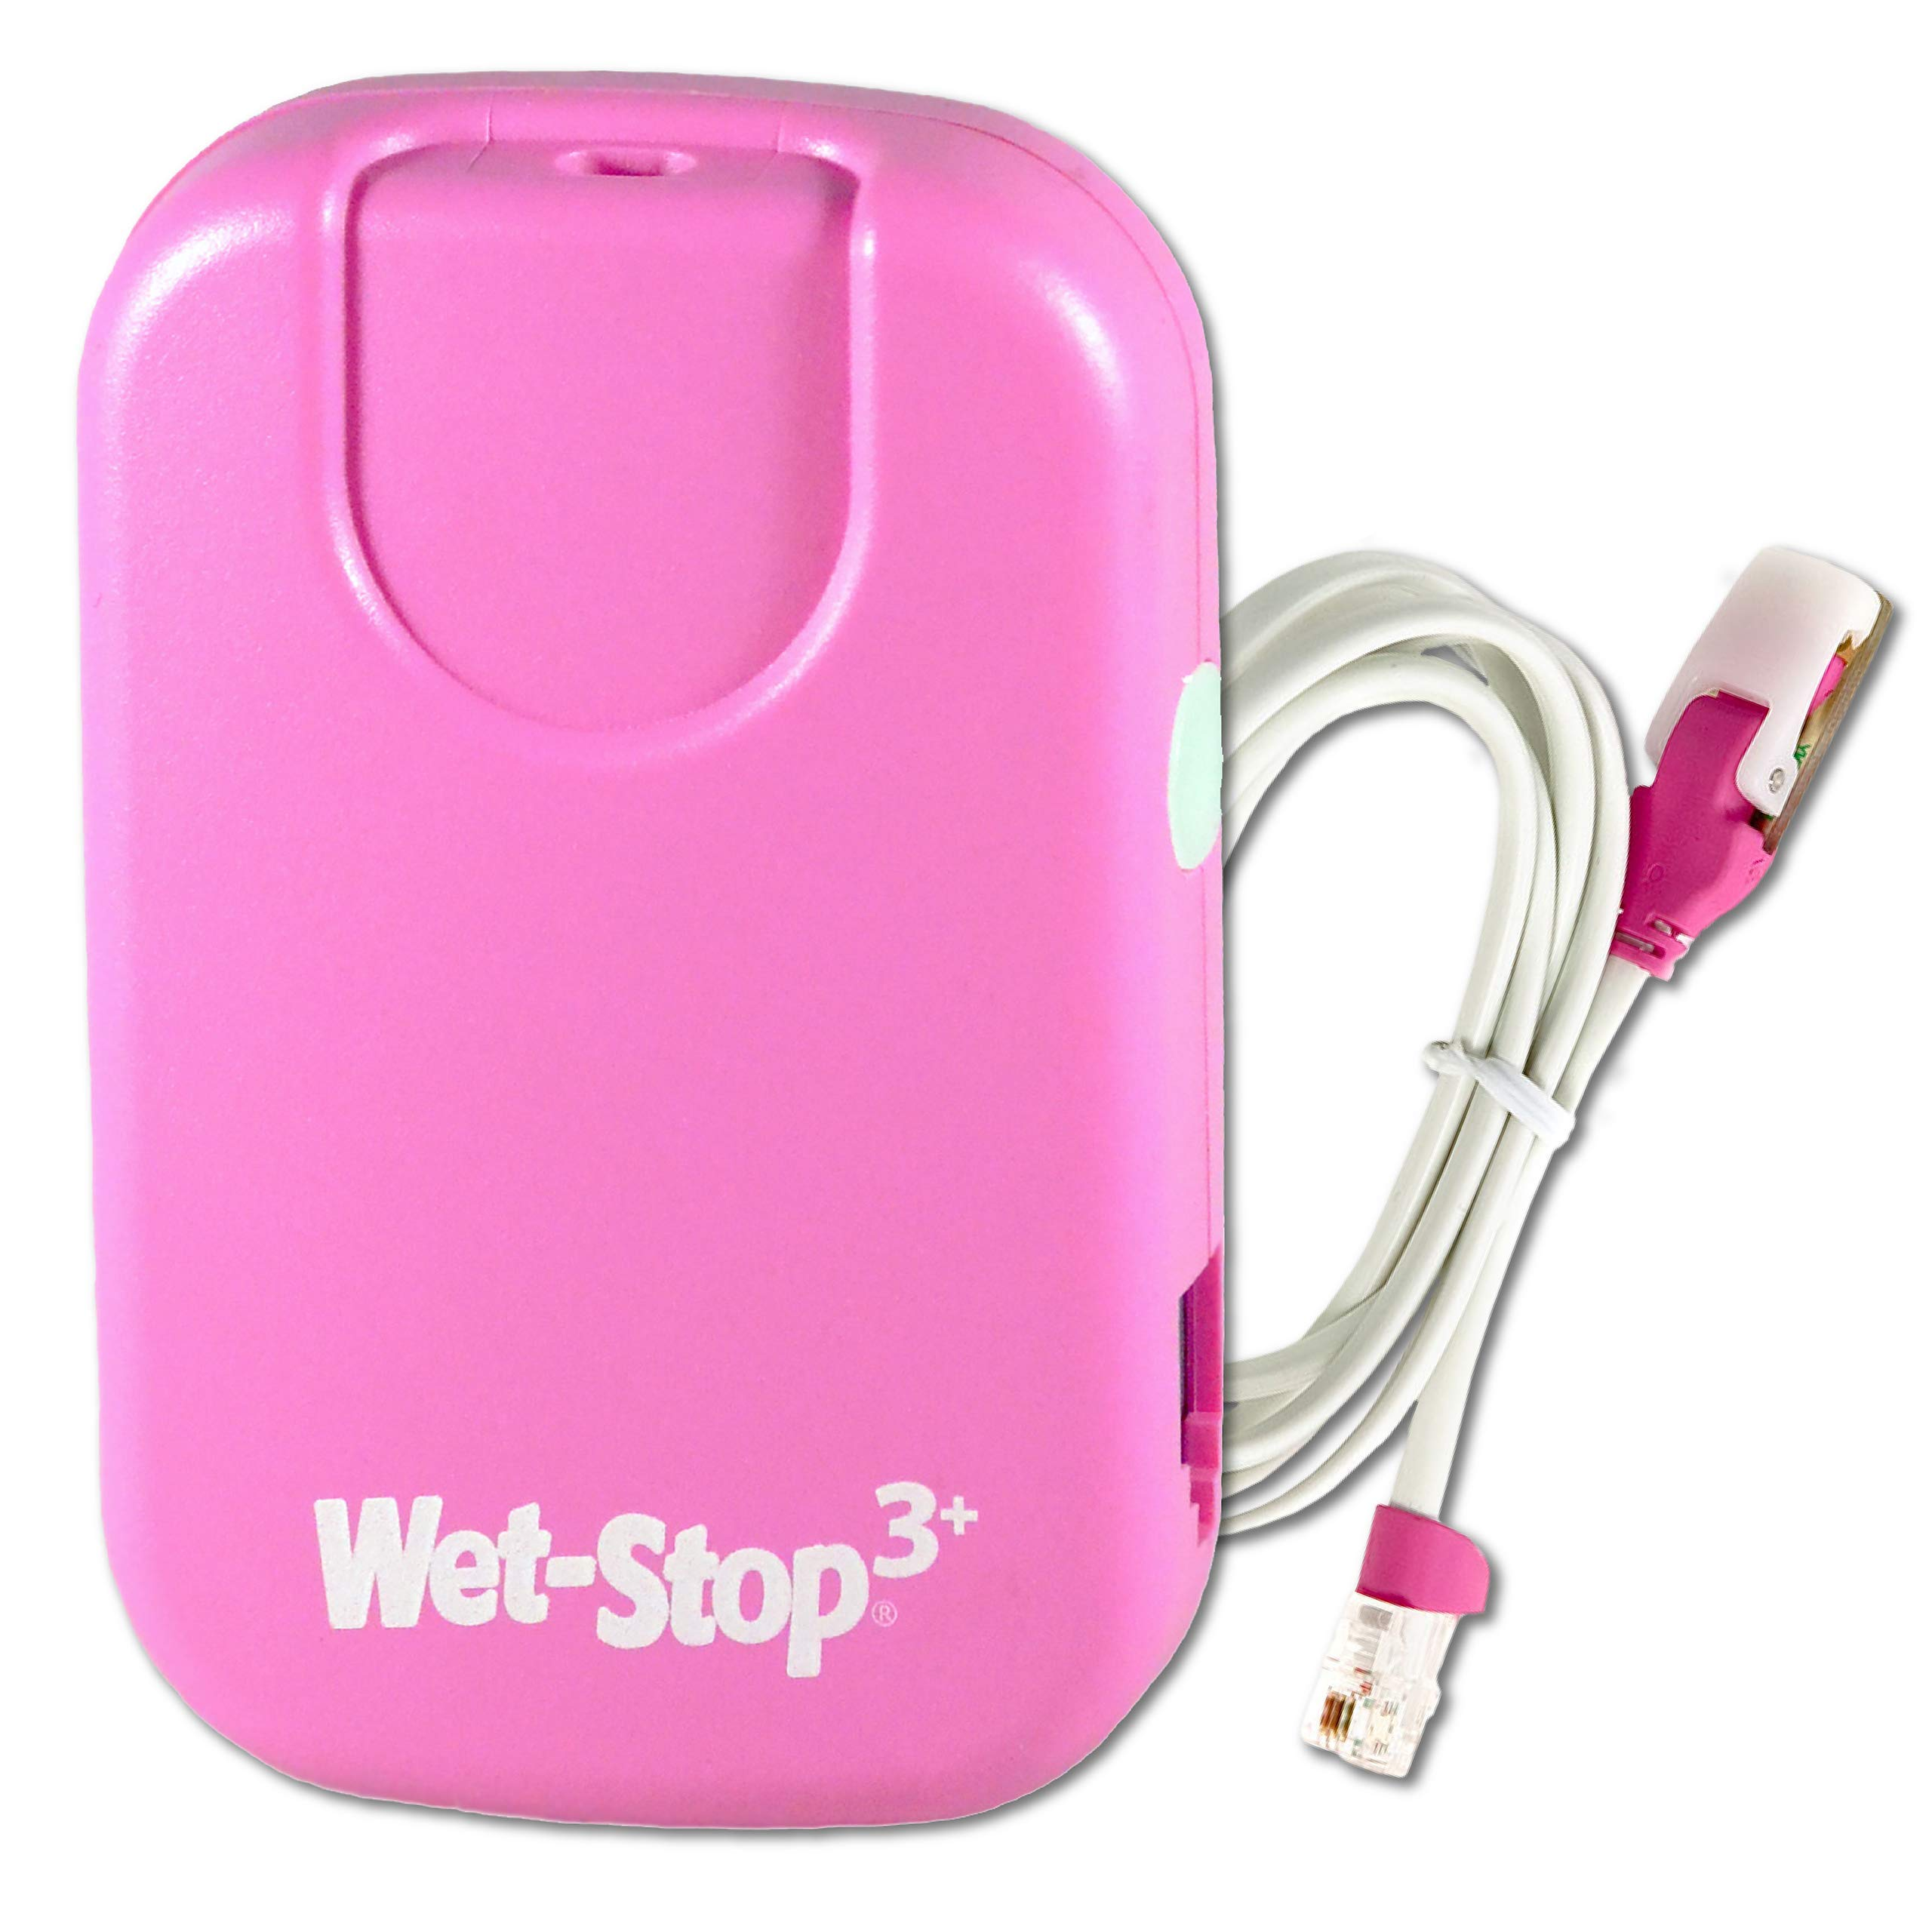 Wet-Stop 3 Pink Bedwetting Enuresis Alarm with Loud Sound and Strong Vibration for Boys or Girls, Proven Solutions for Bedwetters